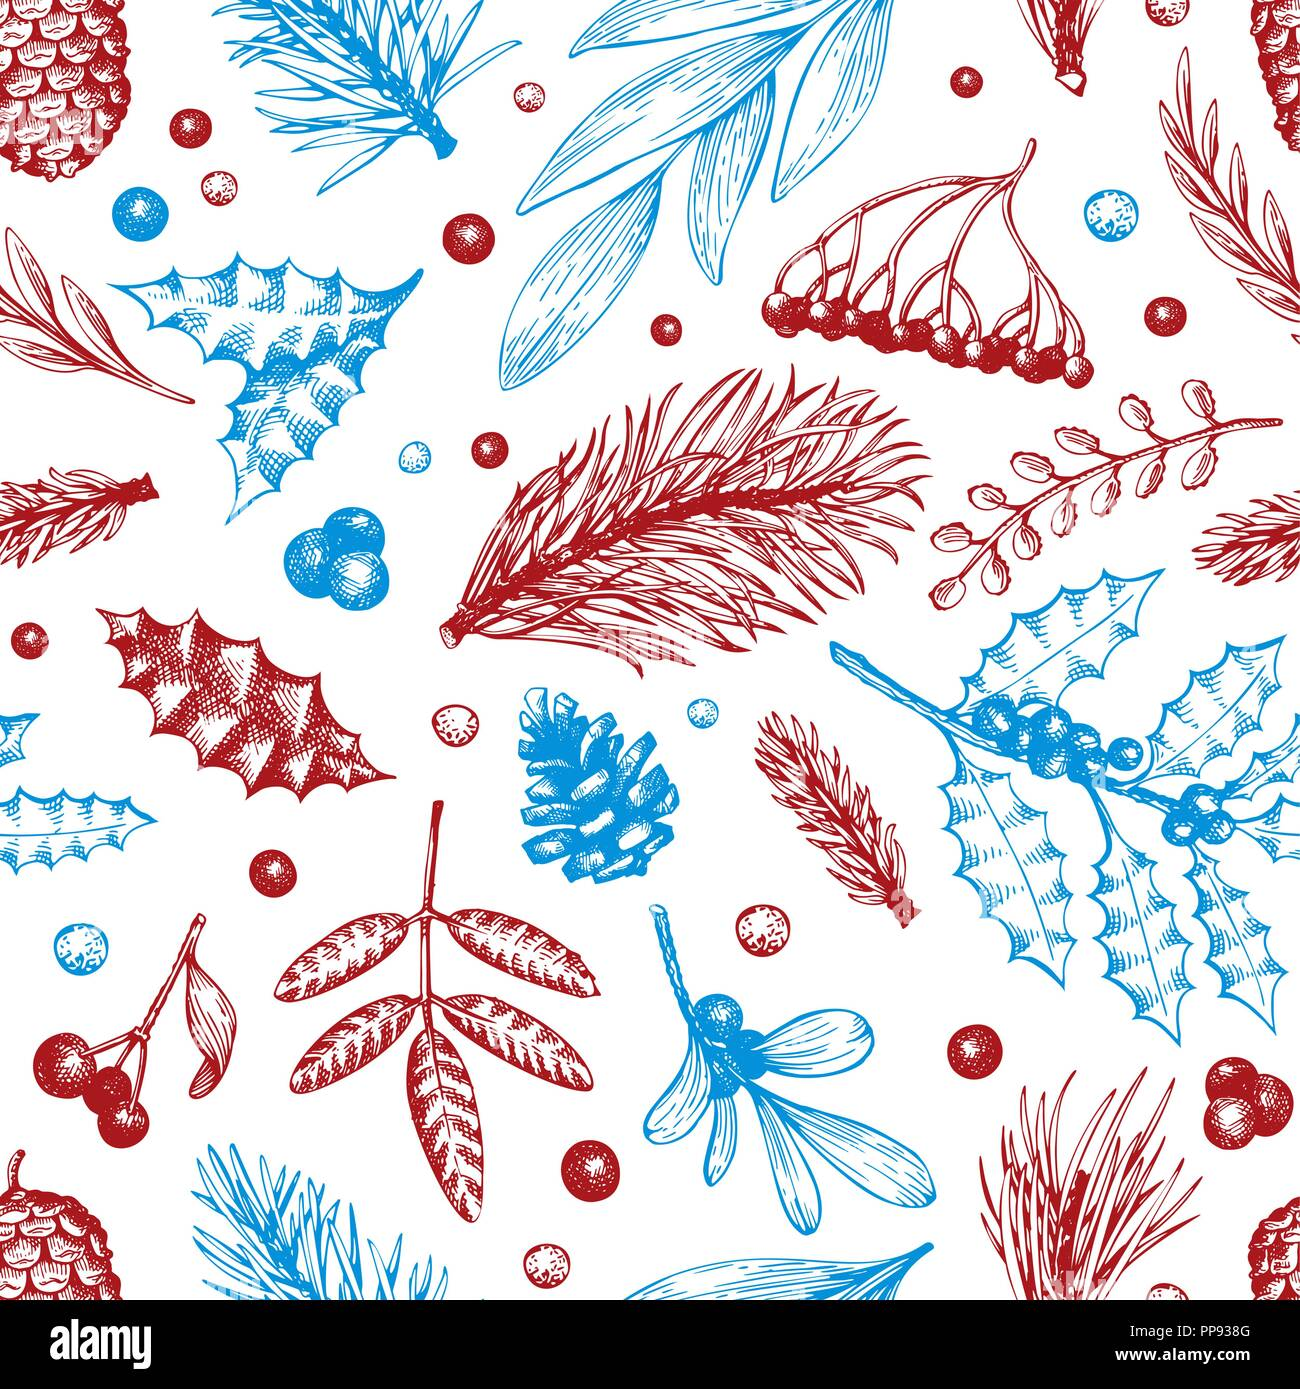 Vector Christmas seamless pattern. Hand drawn winter illustrations. Banner with coniferous, pine branches, berries, holly, mistletoe in retro style. Merry Christmas background. - Stock Vector